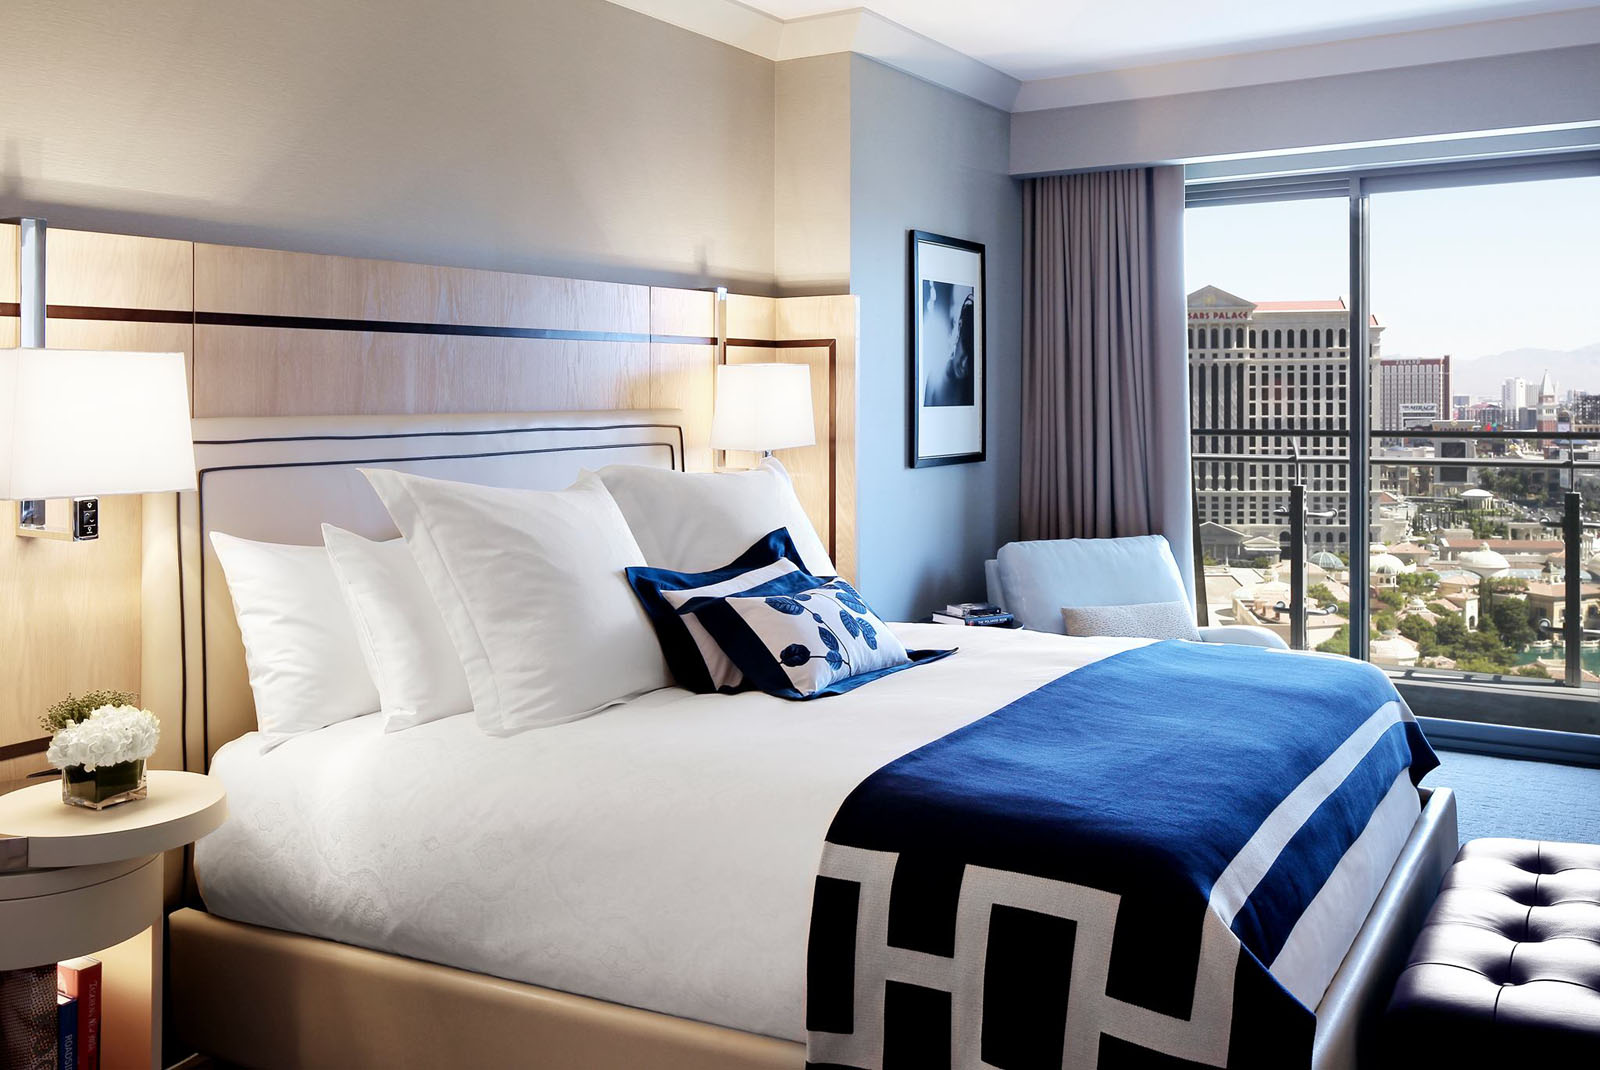 Paris Bedroom Decorating Ideas Swanky Hotel Interior Design The Cosmopolitan Of Las